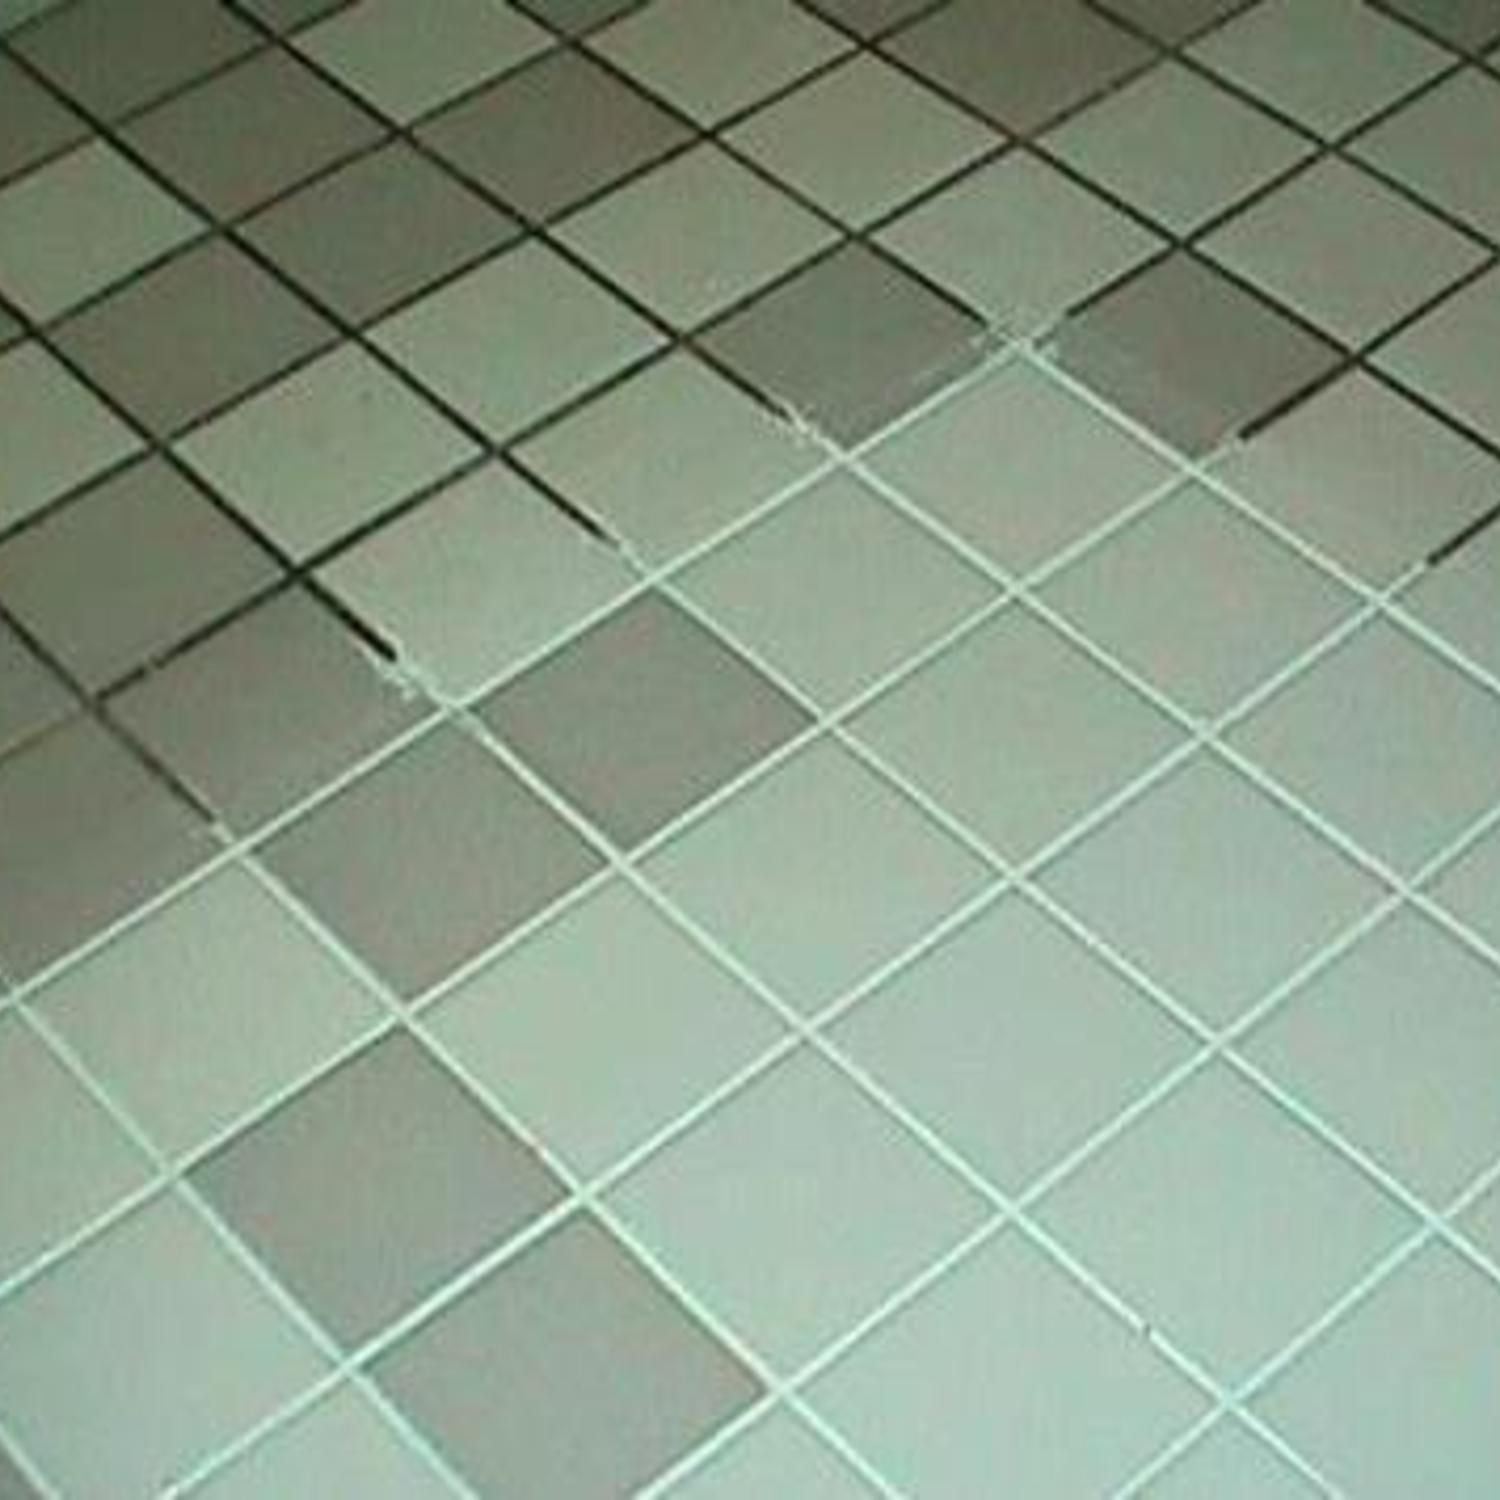 DIY Grout Cleaner Grout Cleaner Combine 7 cups water, 1/2 cup baking soda, 1/3 cup lemon juice and 1/4 cup vinegar - in a spray bottle and spray your floor, let it sit for a minute or two... then scrub!